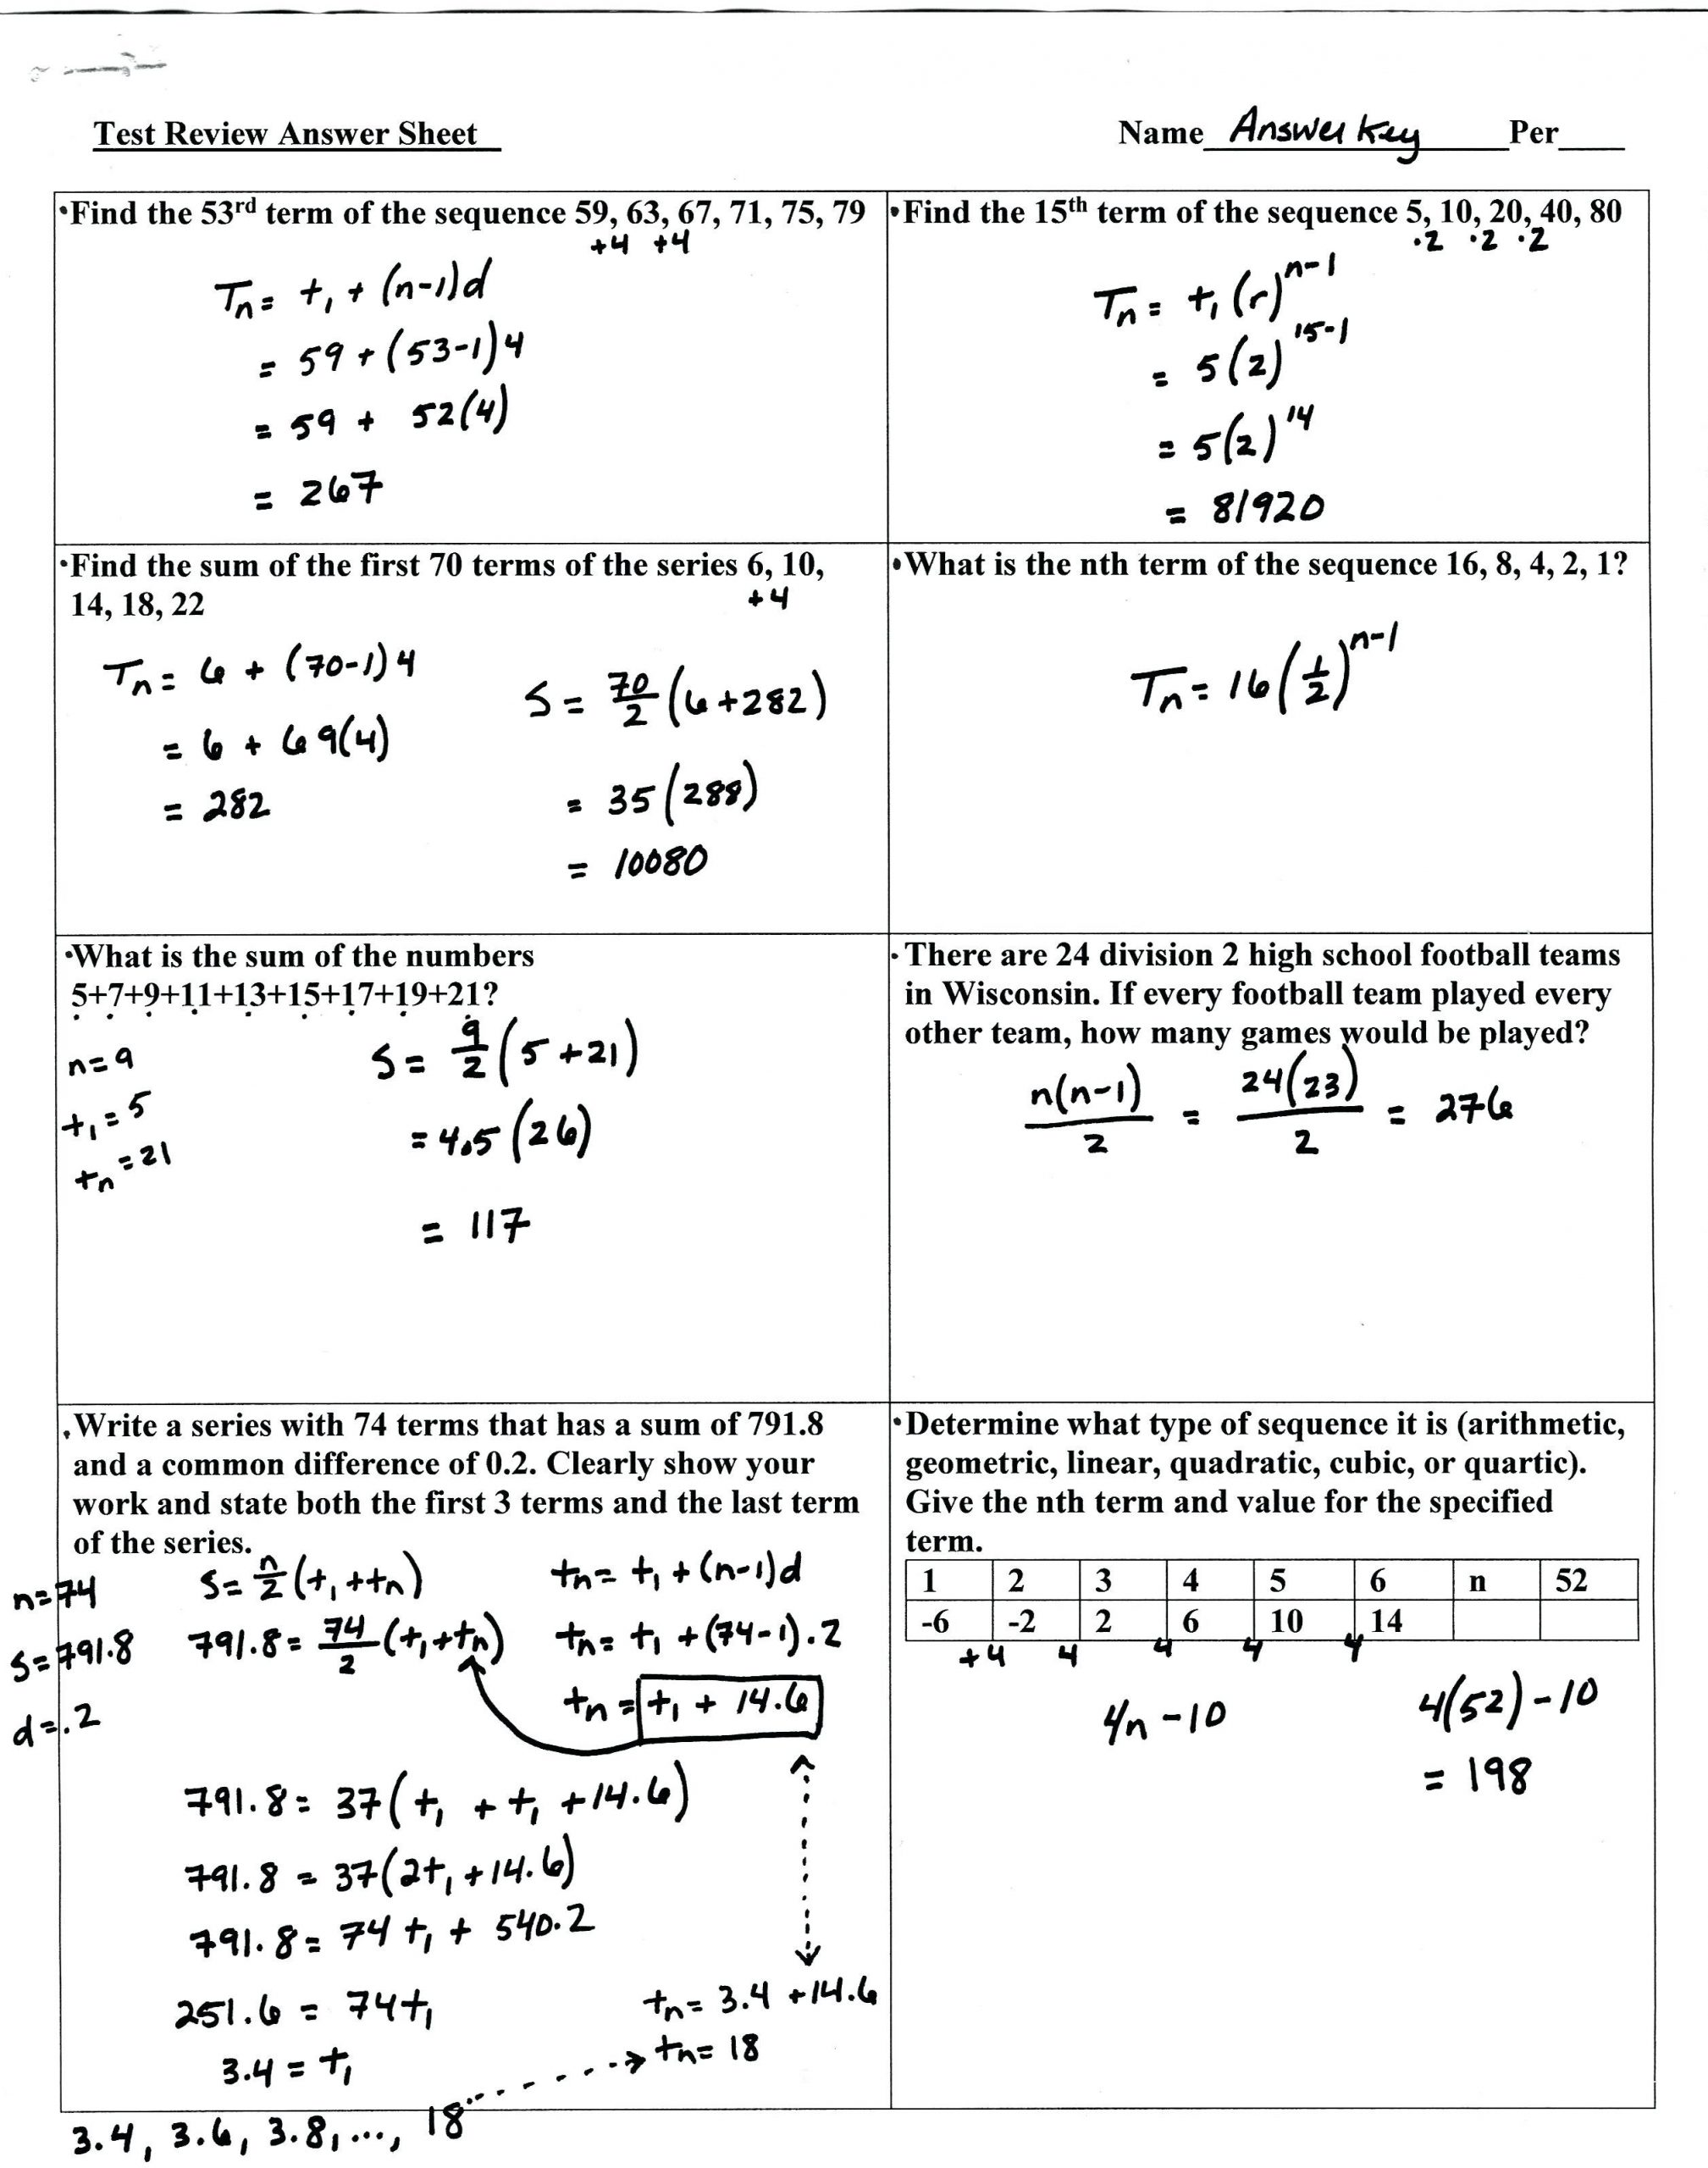 Arithmetic Sequence Worksheet with Answers Arithmetic Sequence Practice Worksheet Promotiontablecovers